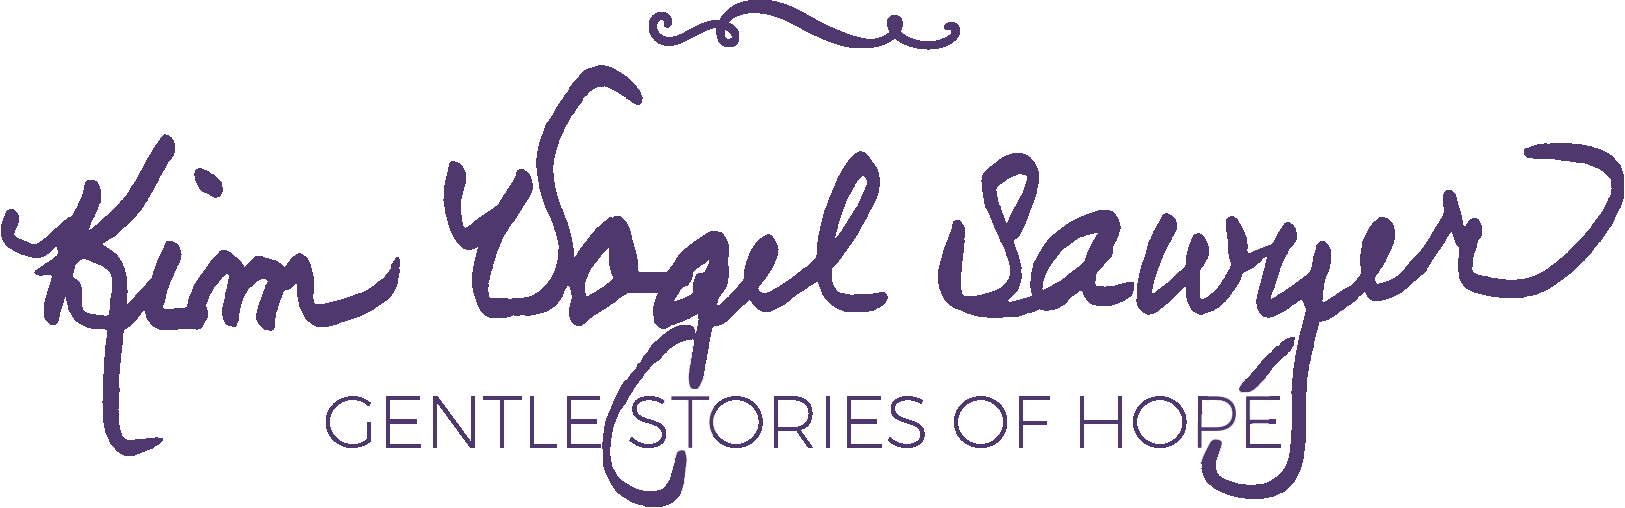 header-logopurple